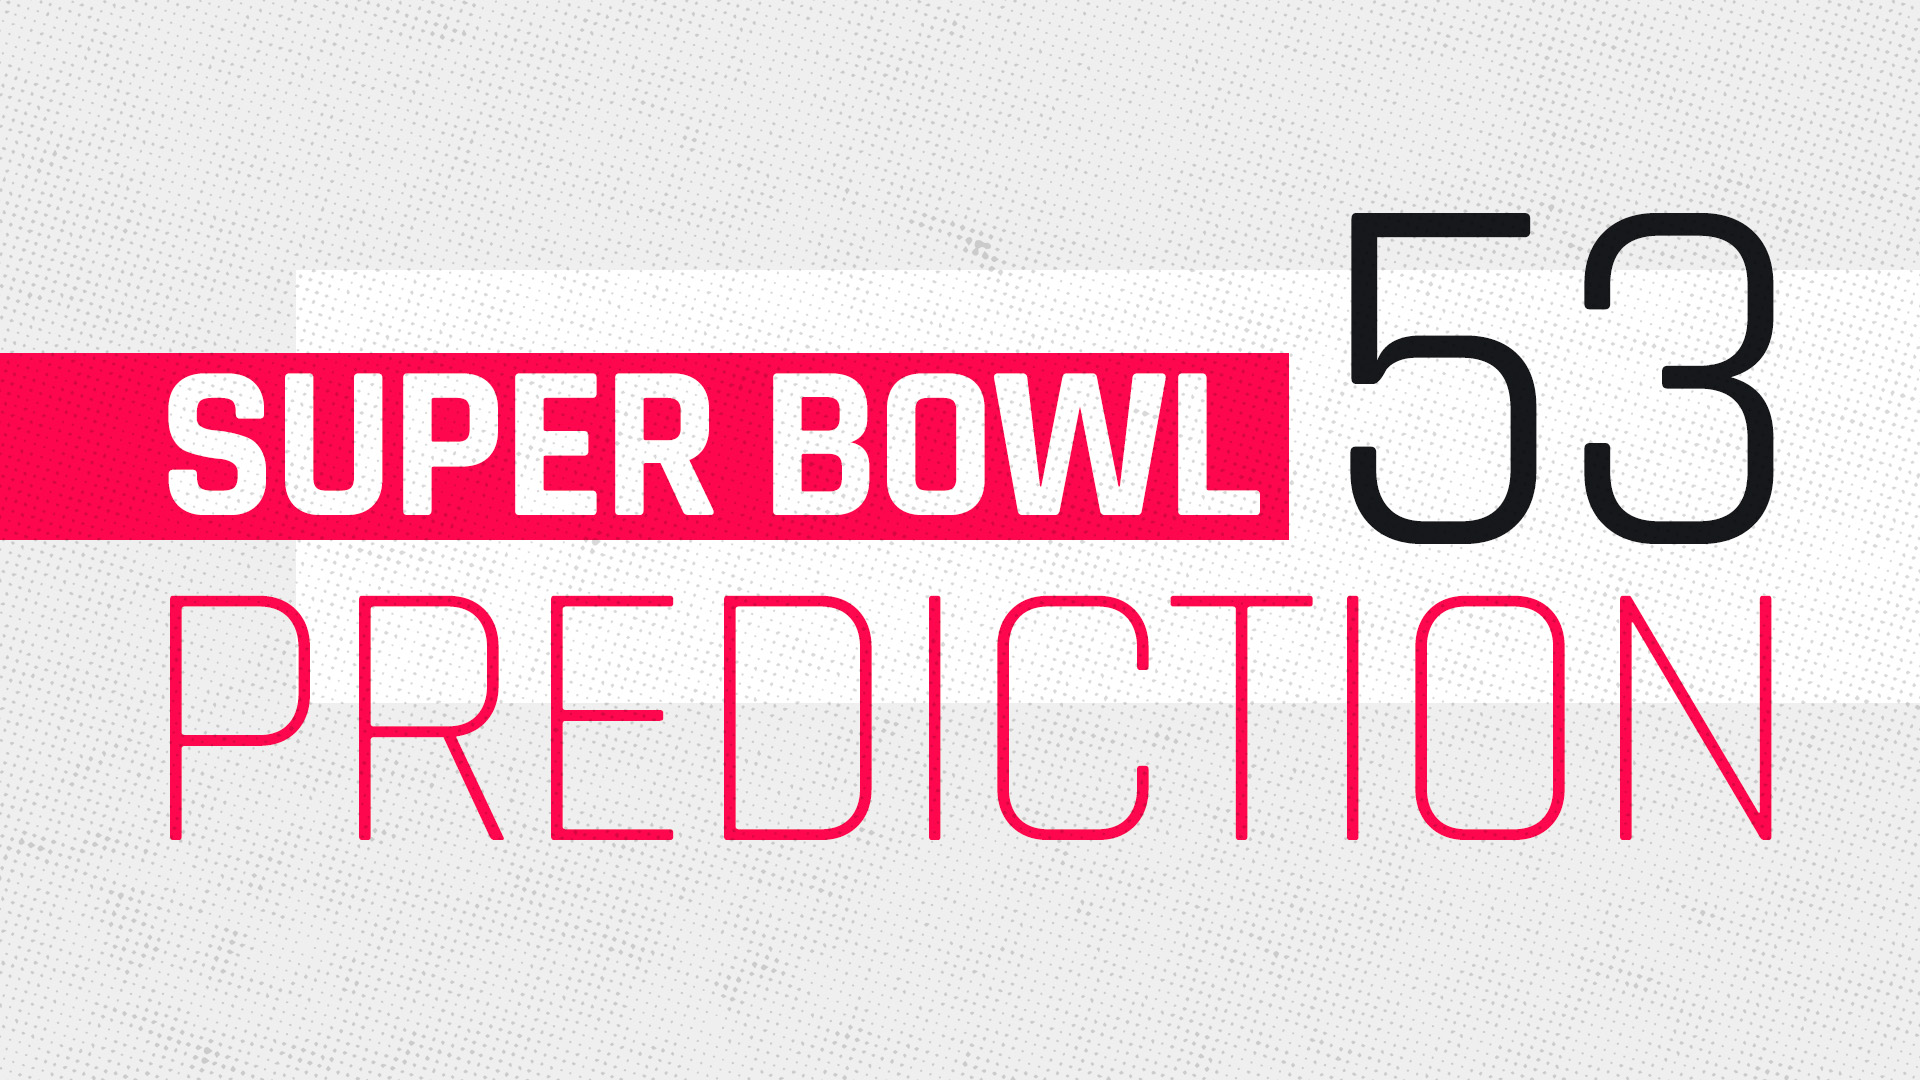 Super Bowl 53 prediction: Who has edge in Saints vs. Chargers?